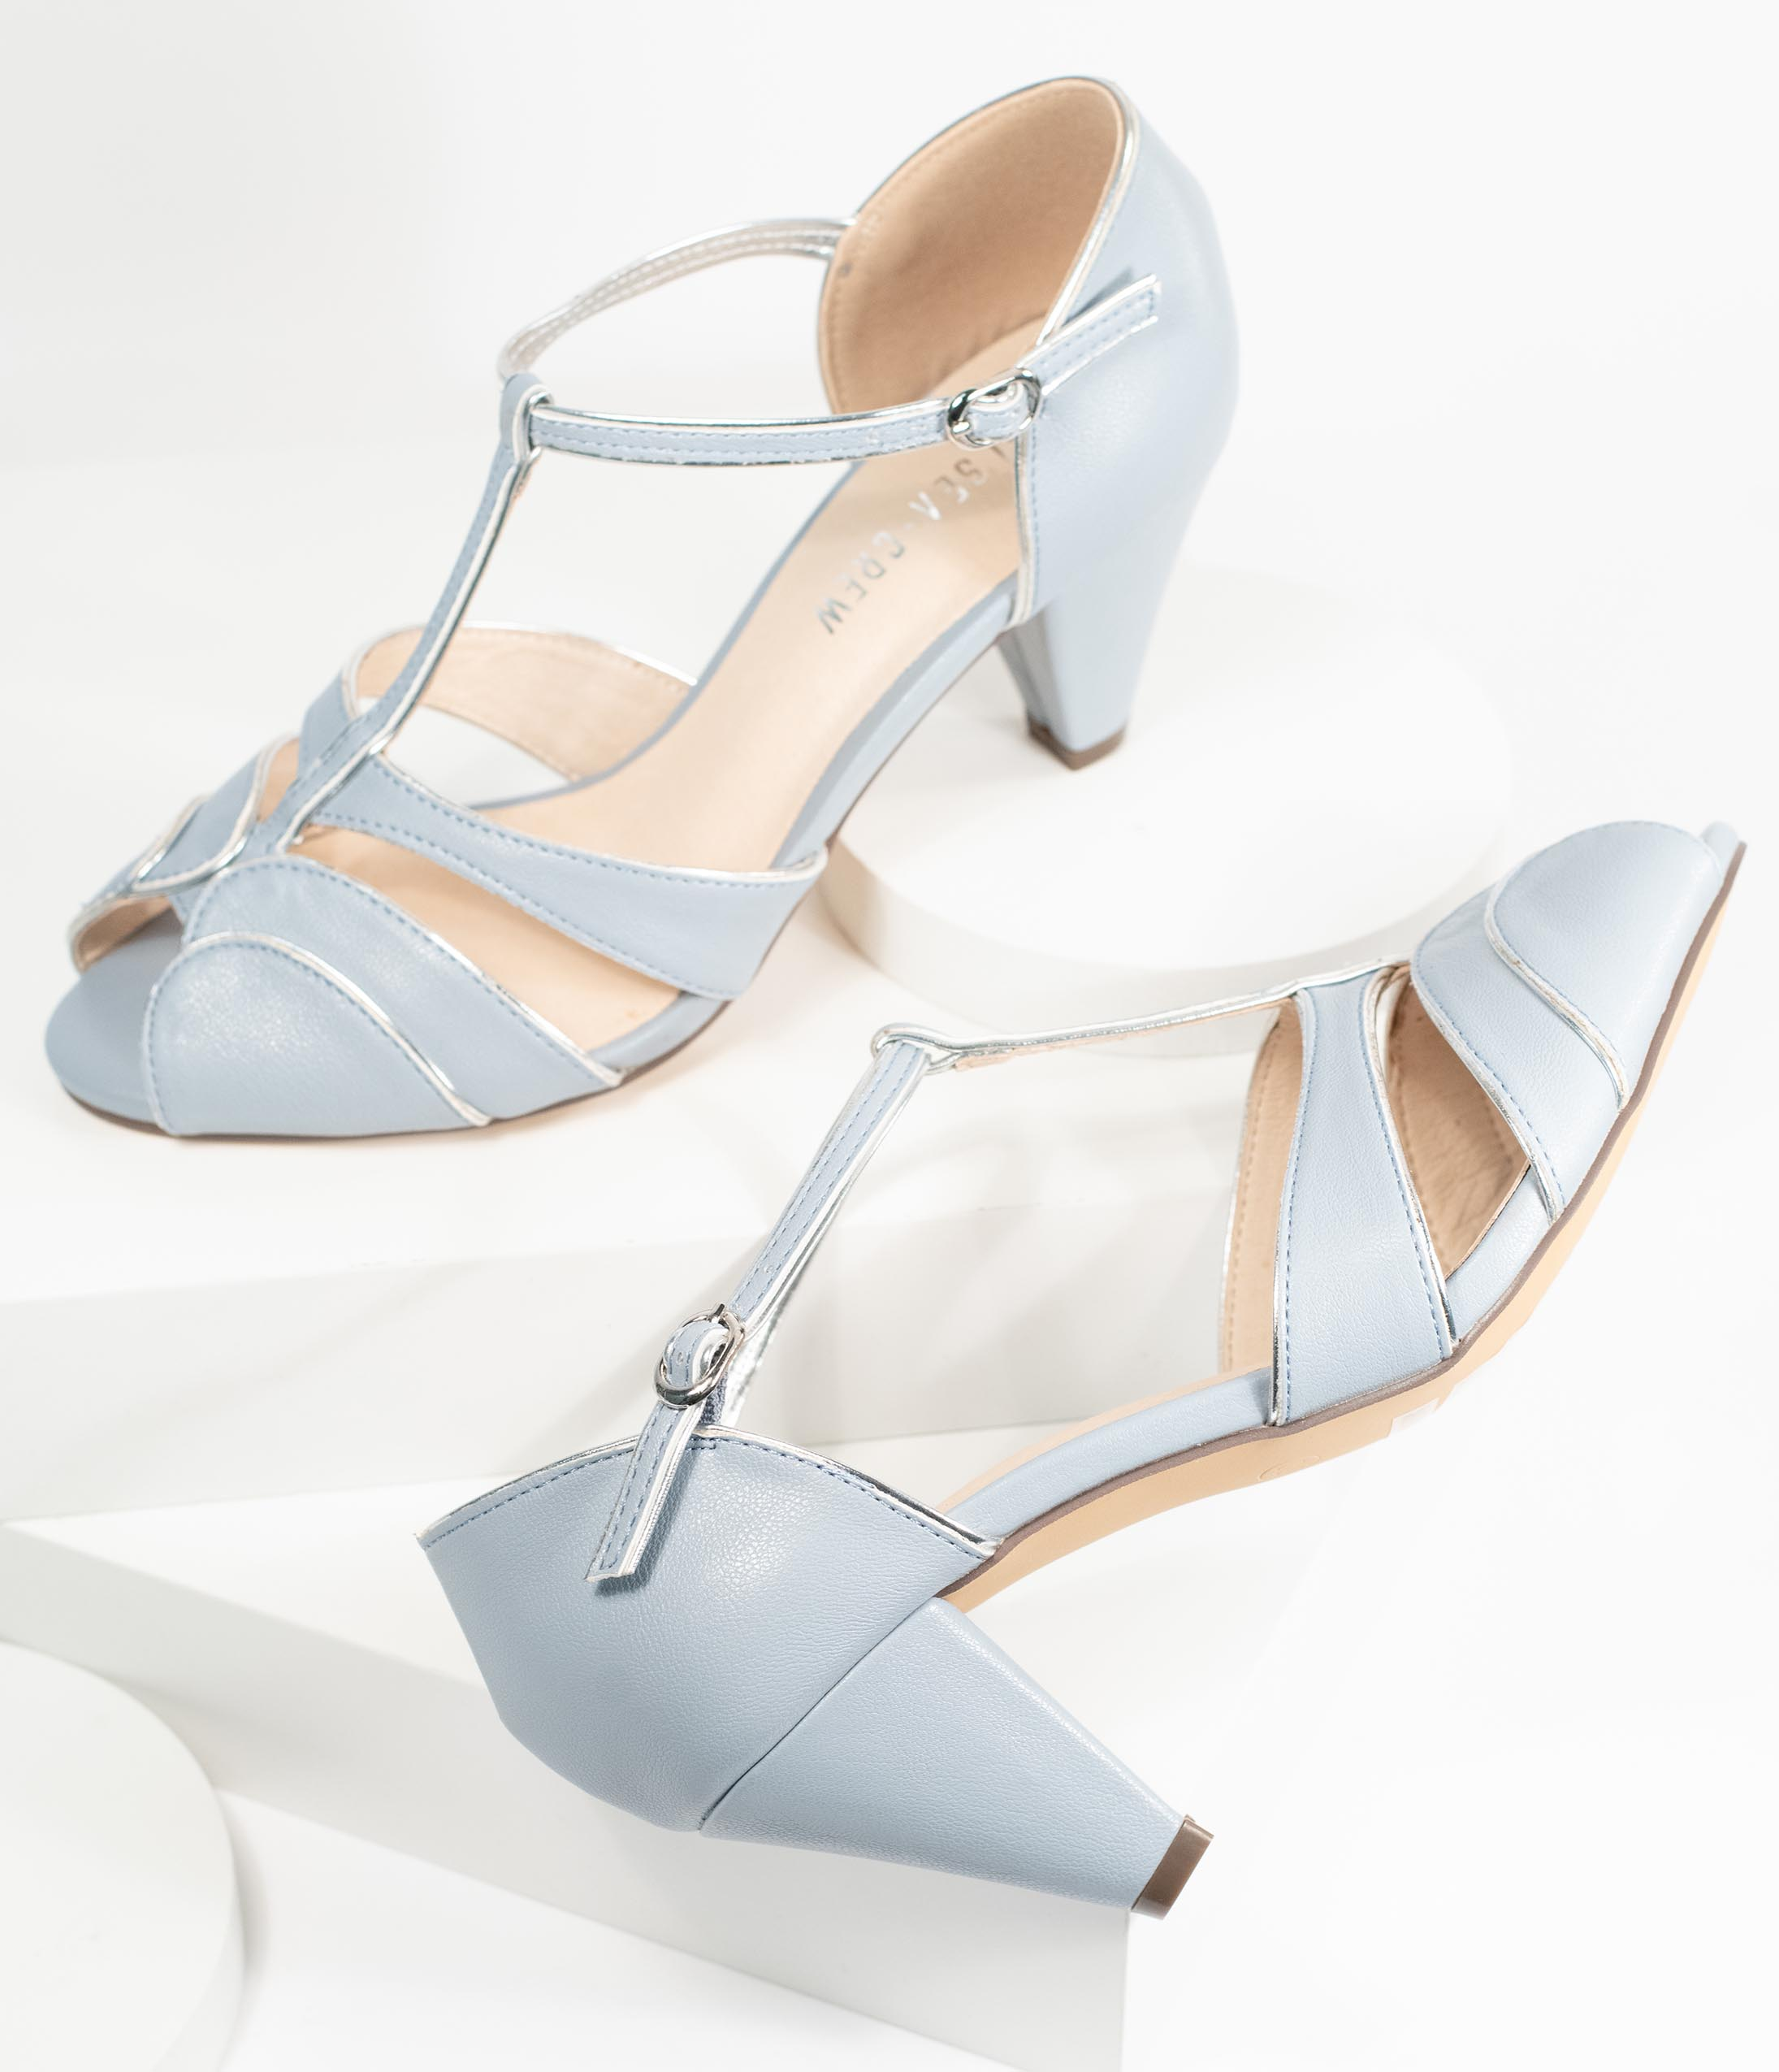 1930s Style Clothing and Fashion Chelsea Crew Baby Blue T-Strap Peep Toe Penelope Heels $82.00 AT vintagedancer.com